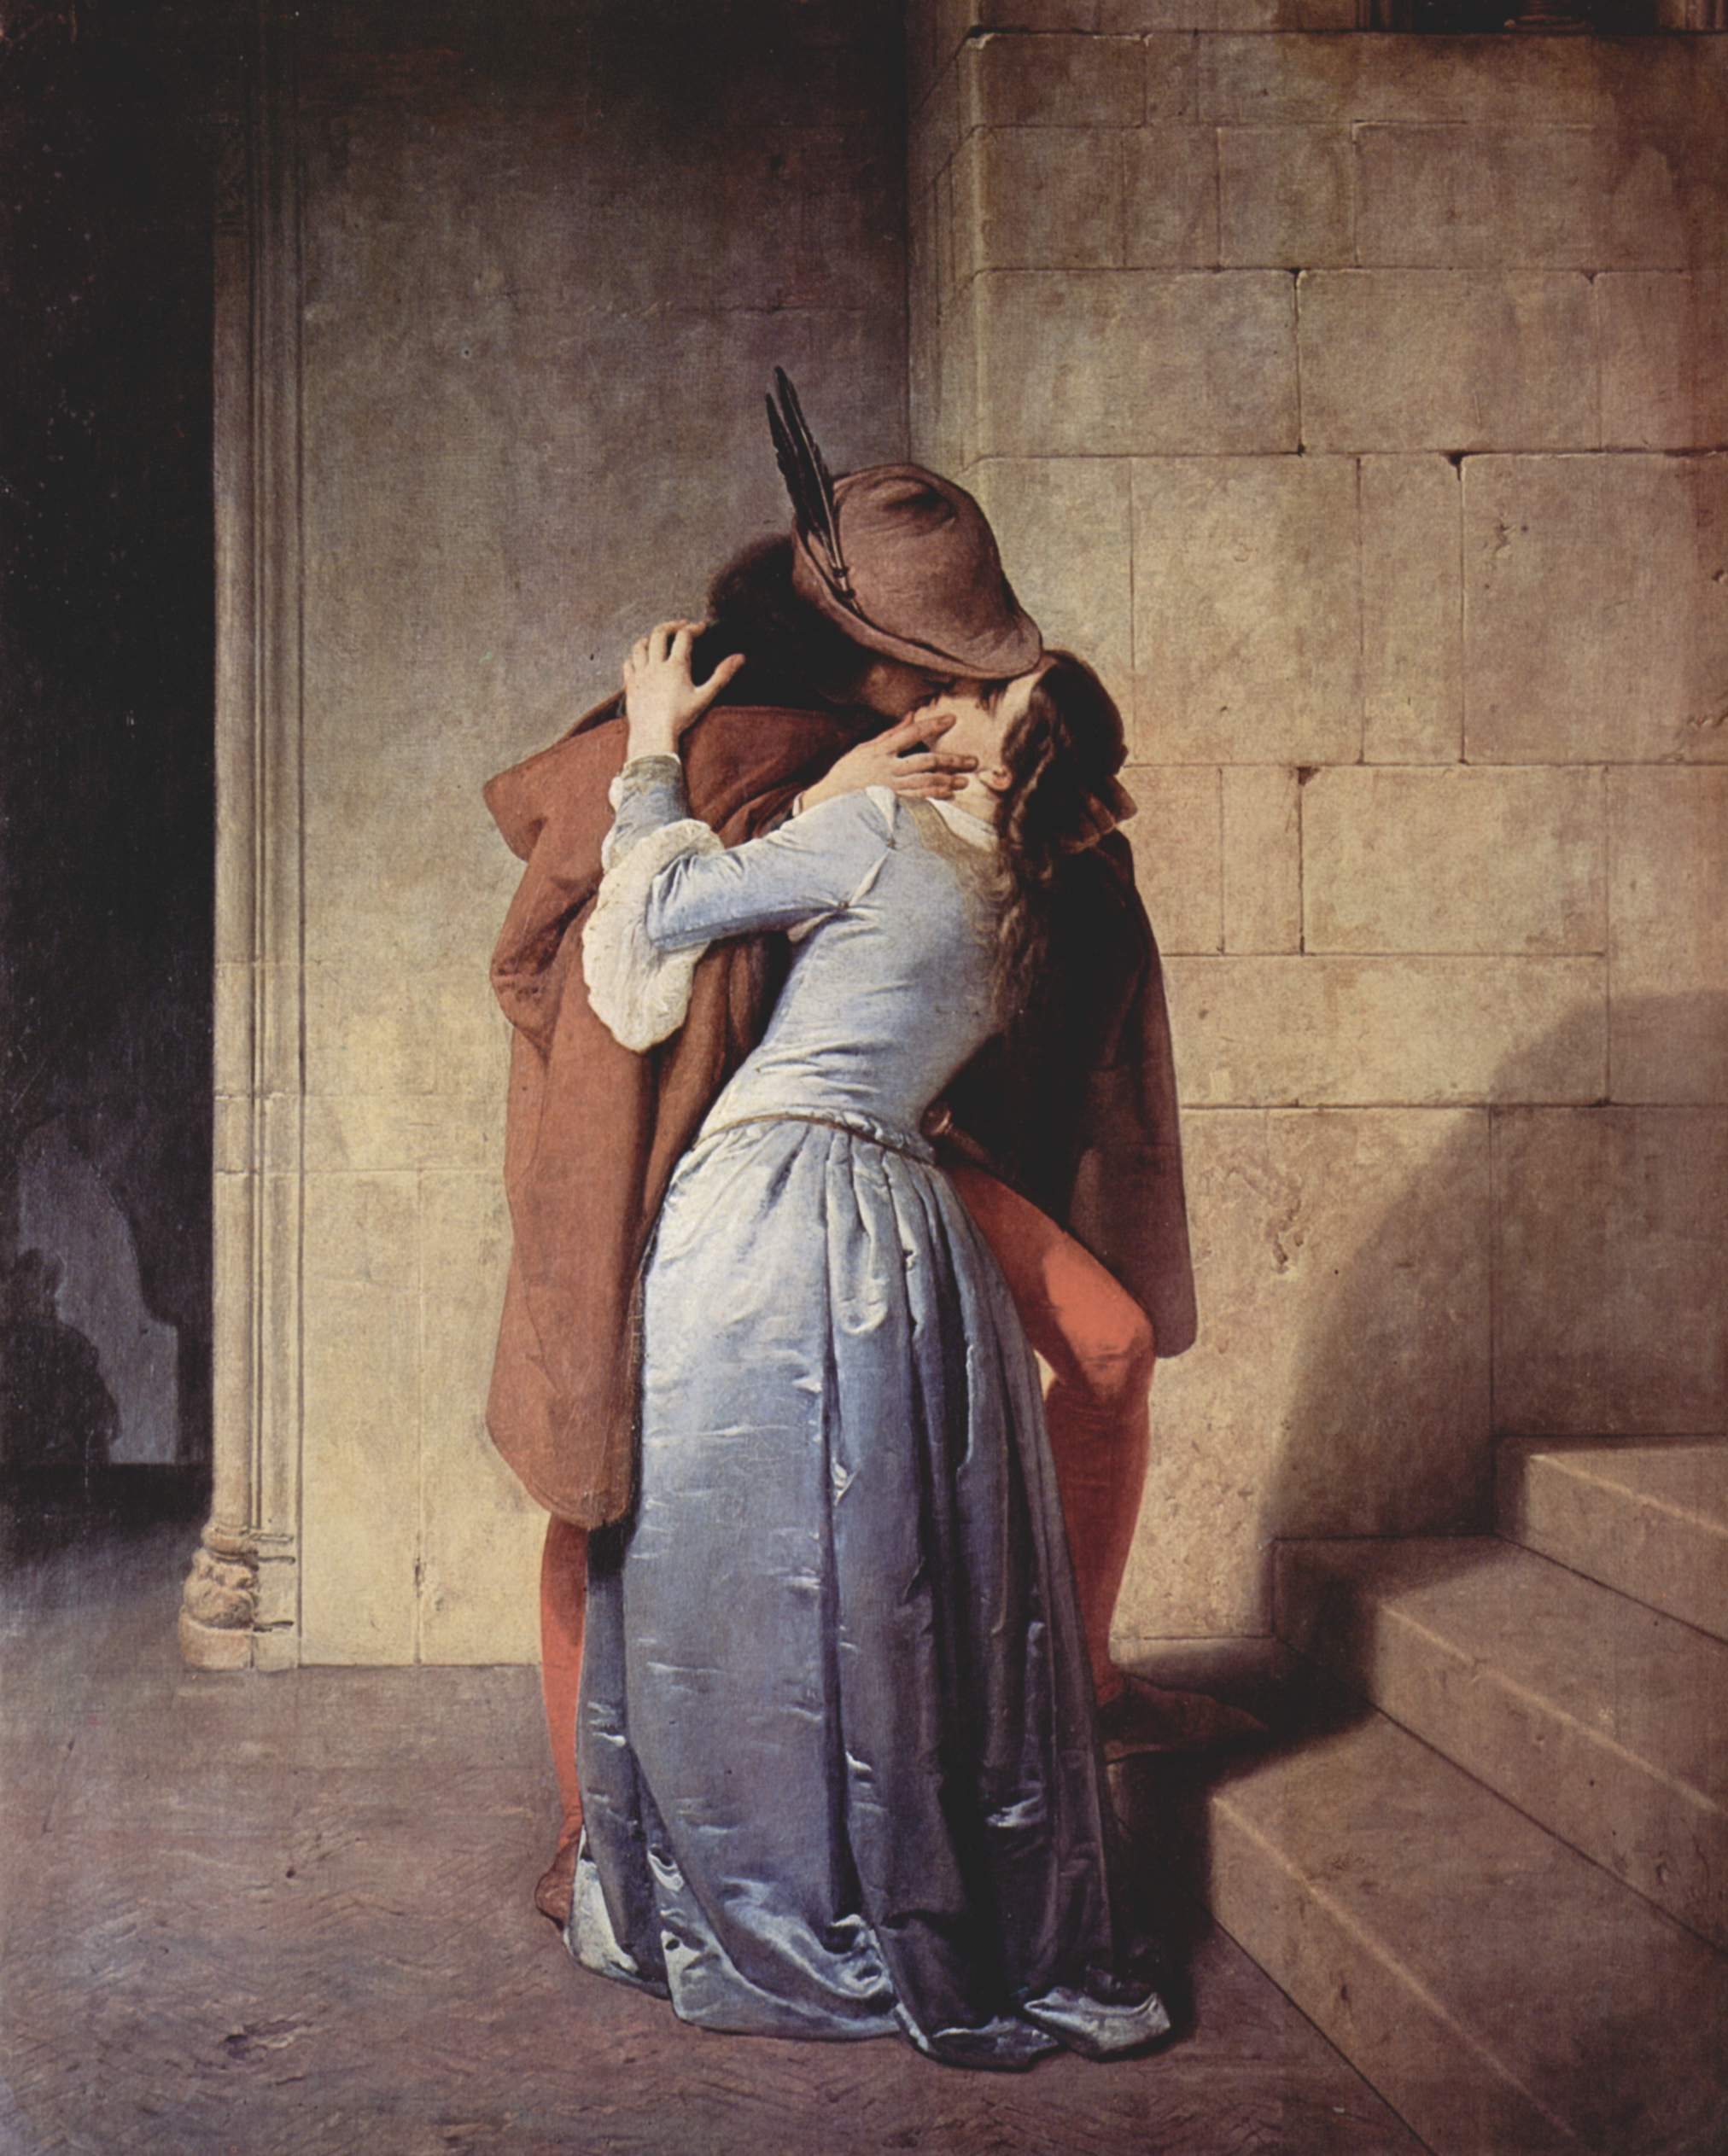 The Kiss by Francesco Hayez (1791-1882)